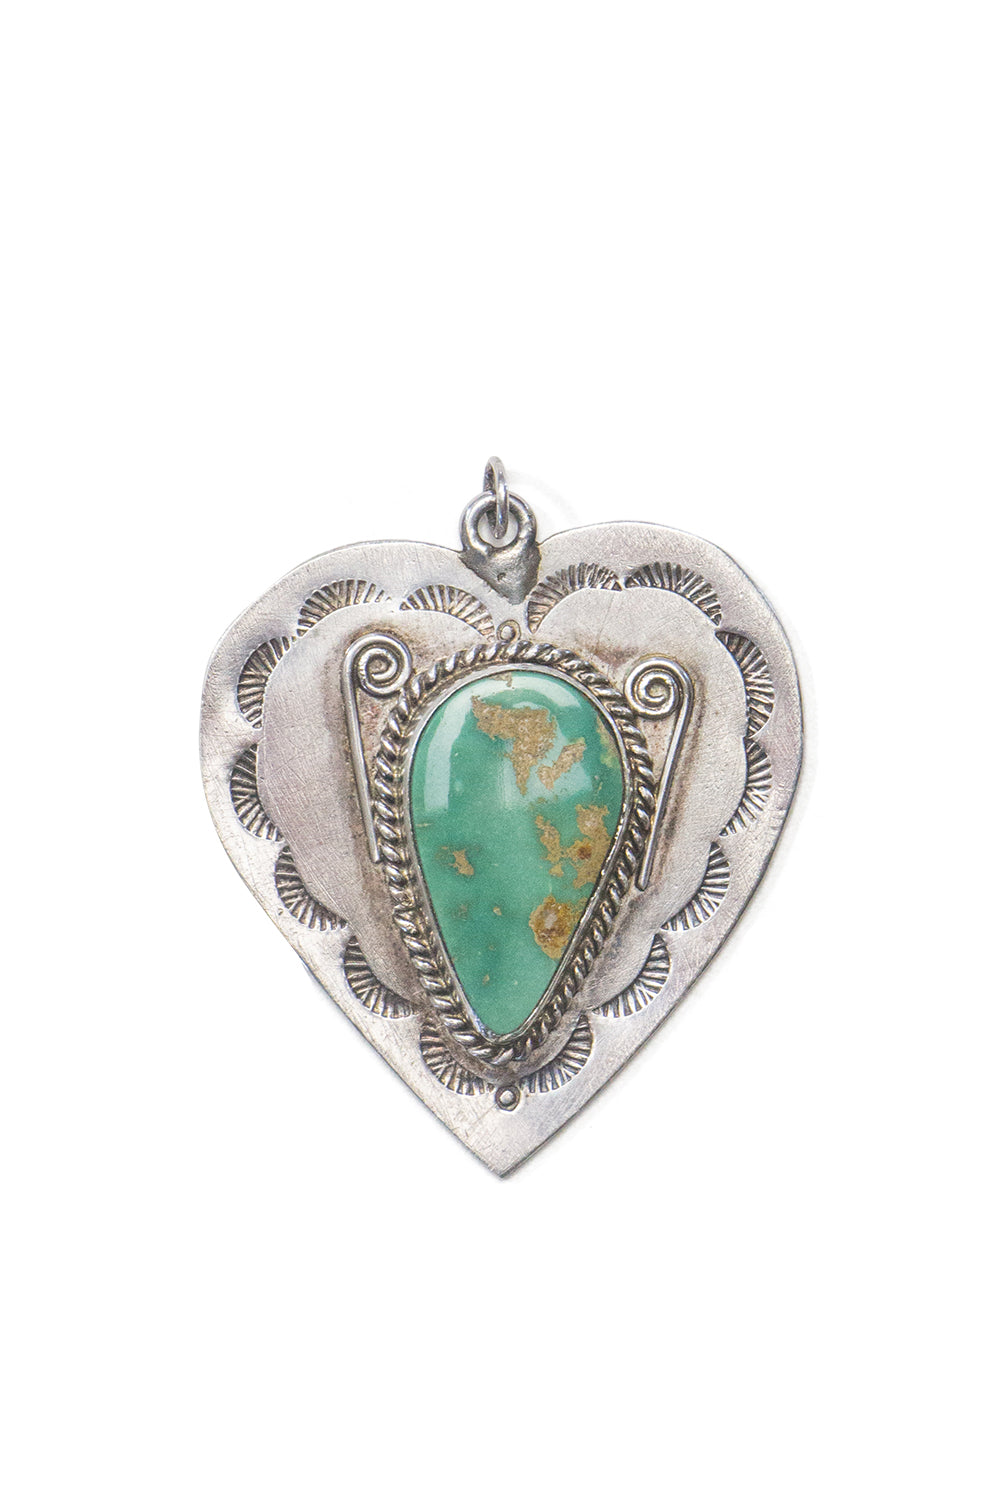 Charm, Heart, Turquoise, Vintage, 928